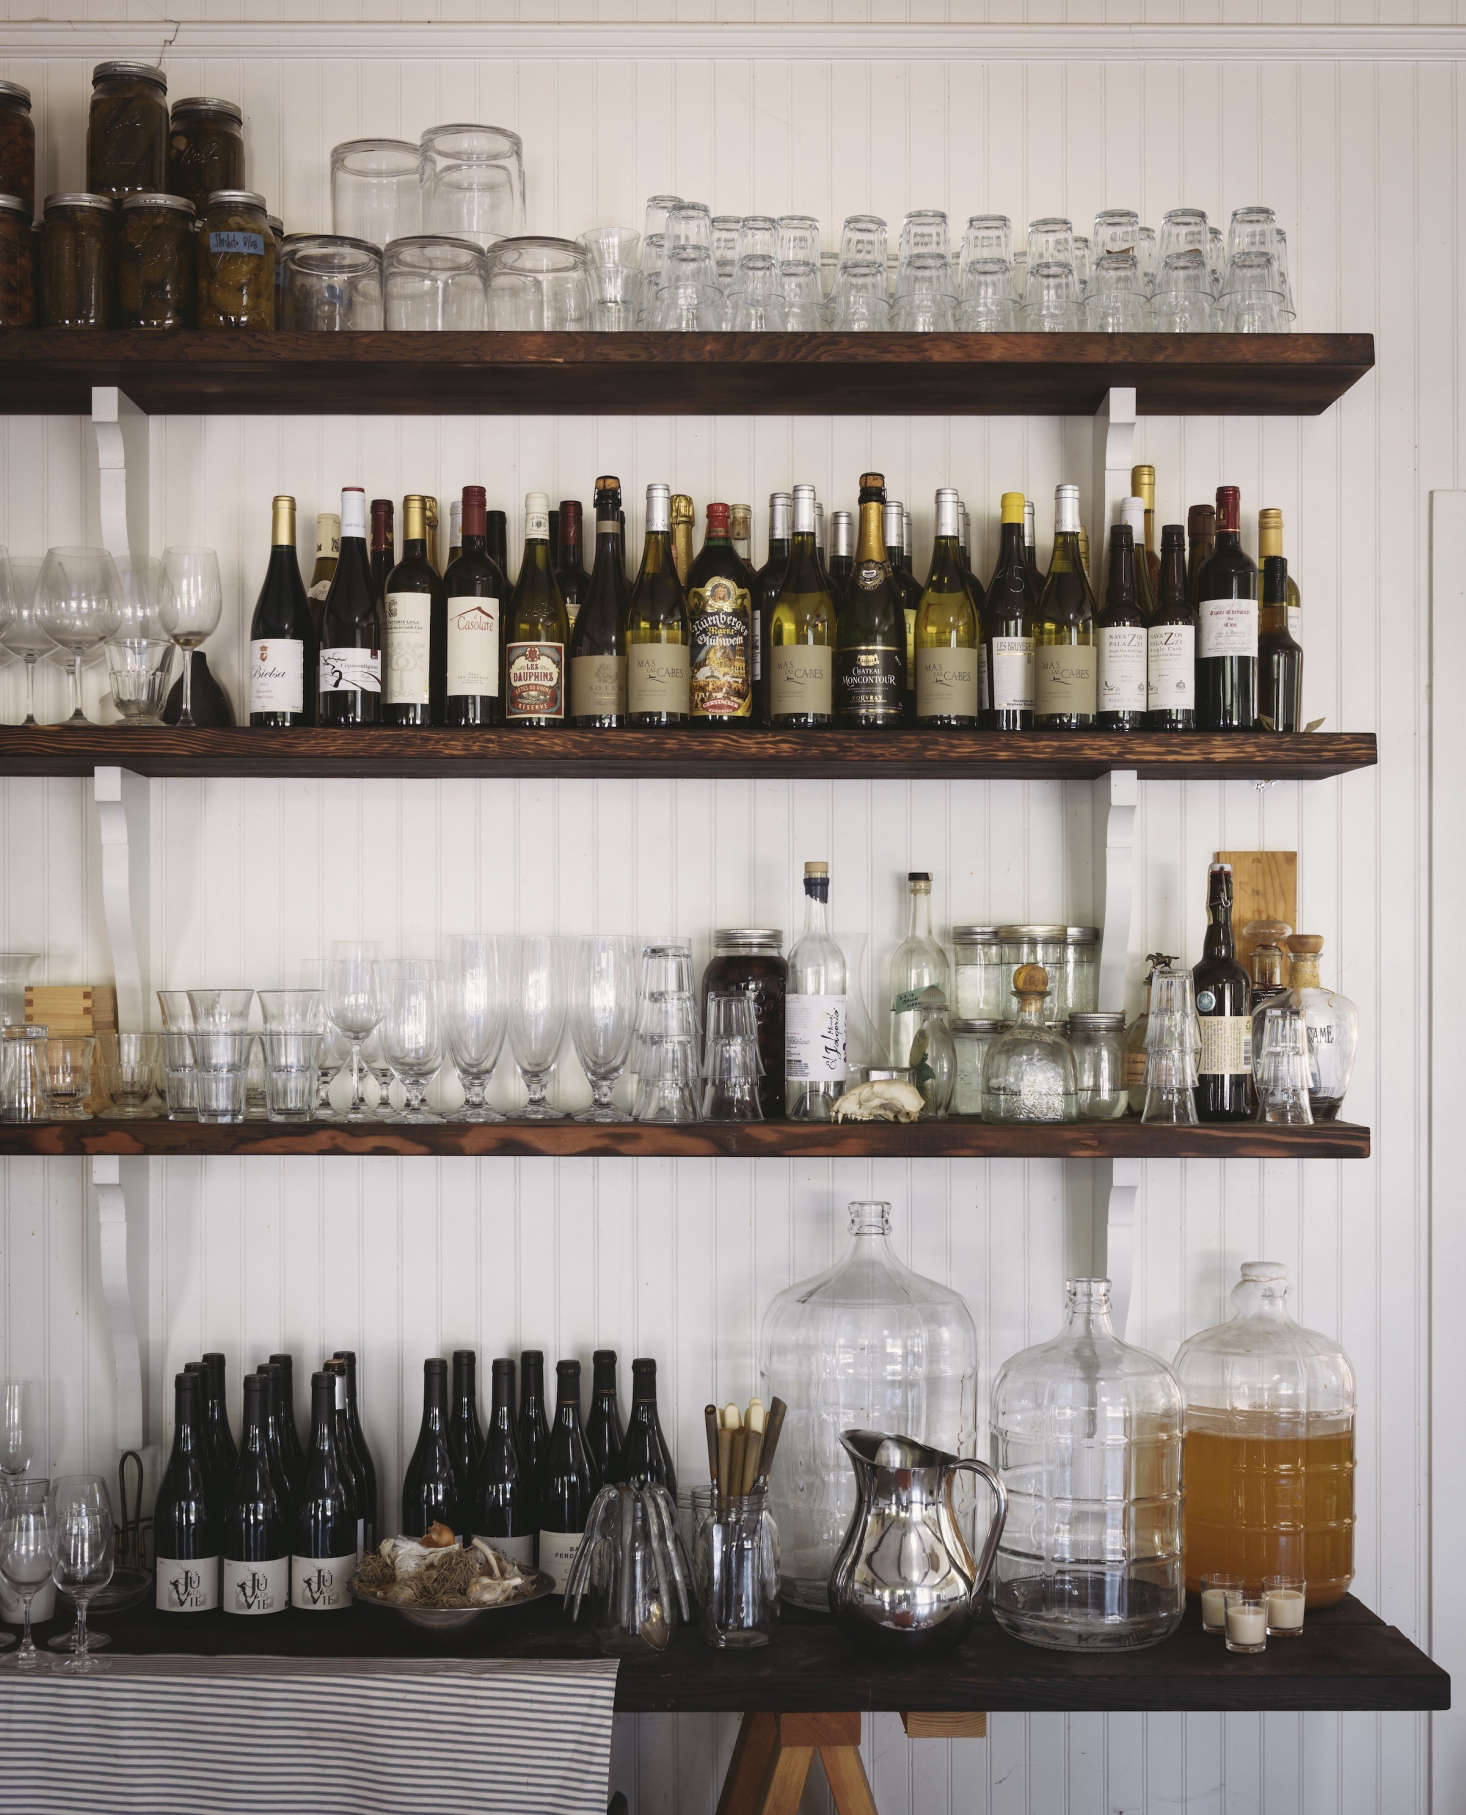 Wines and wine glasses mingle with spirits, vinegars, and pickled vegetables on the cookhouse&#8